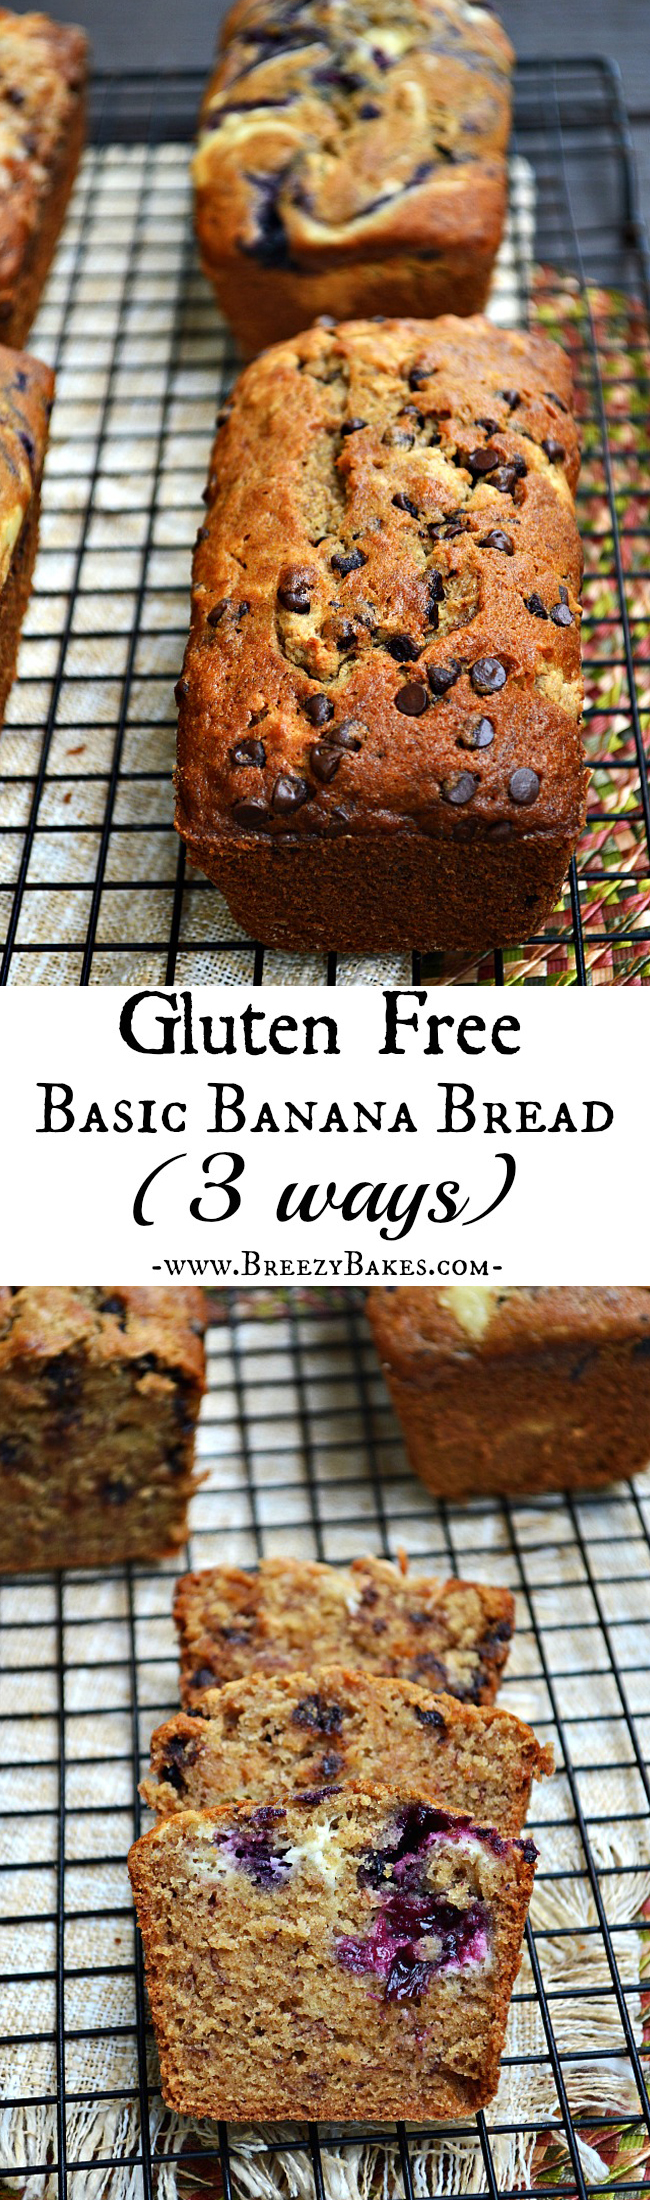 Bake up your favorite flavor of banana bread with this easily adaptable Gluten Free Basic Banana Bread: Three Waysrecipe. Make up your own mix-in variation or choose from Berry Cheesecake, Peanut Butter Cup, and Samoa.